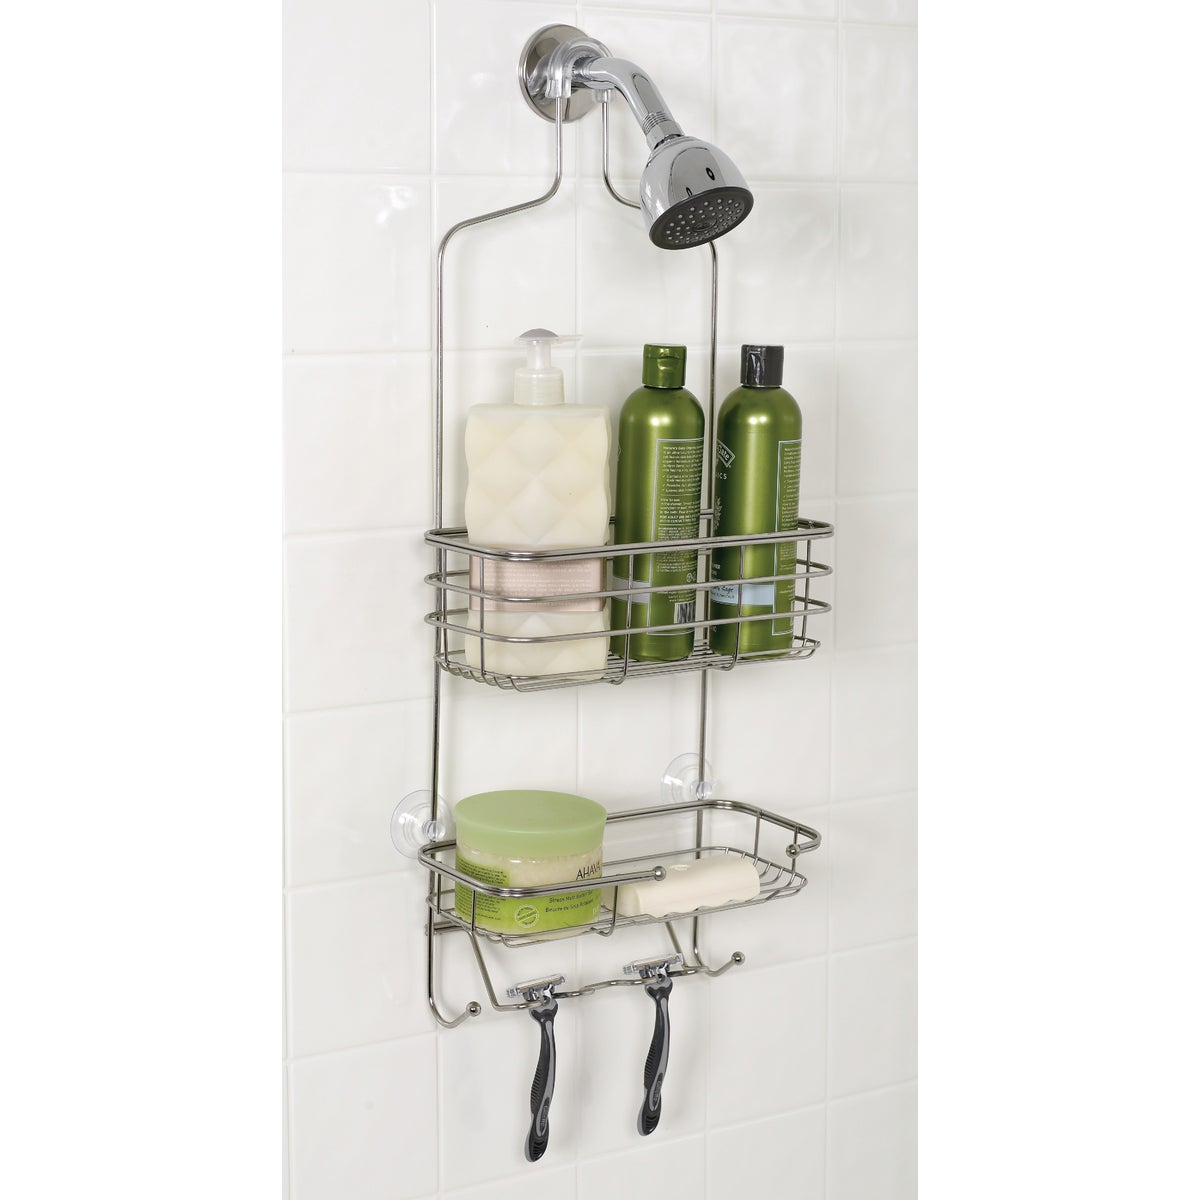 SS LRG SHOWER HEAD CADDY - 7704ST by Zenith Prod Corp